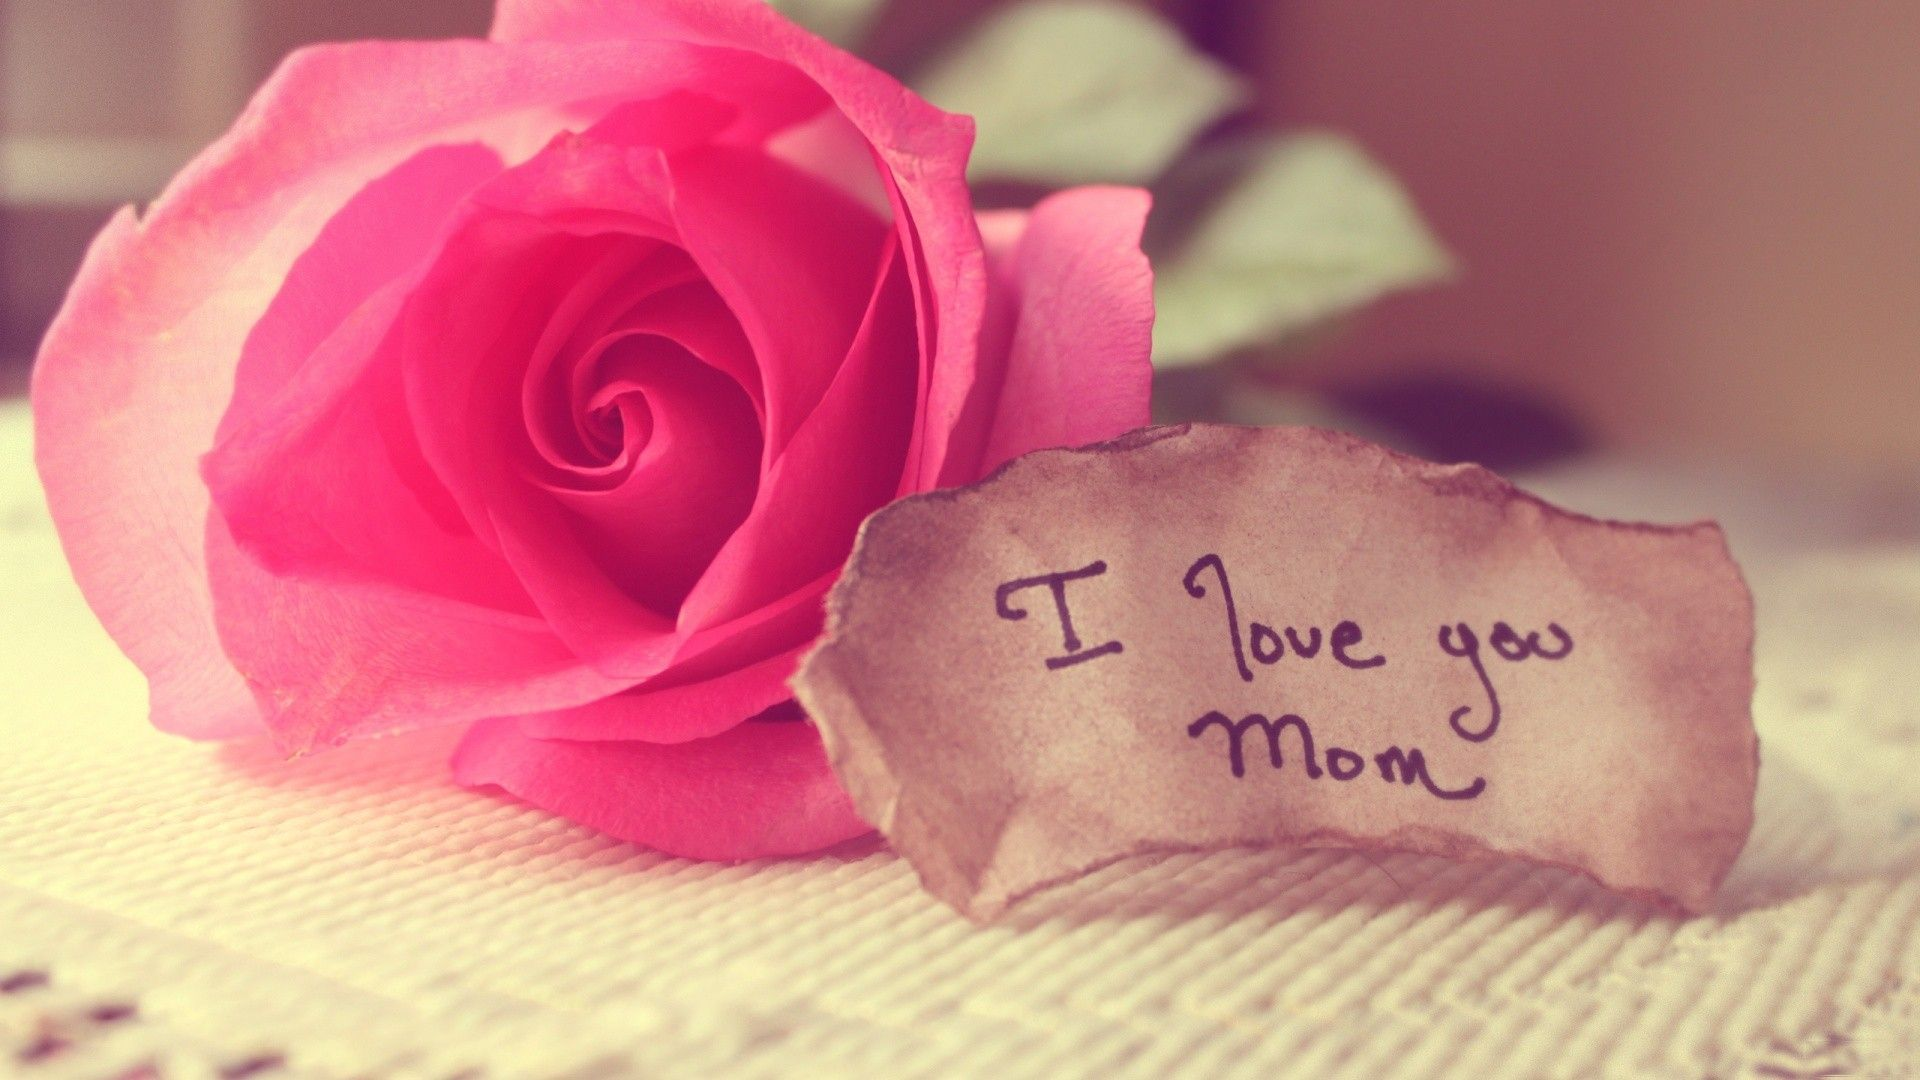 Love Mom Wallpapers   Top Love Mom Backgrounds   WallpaperAccess 1920x1080